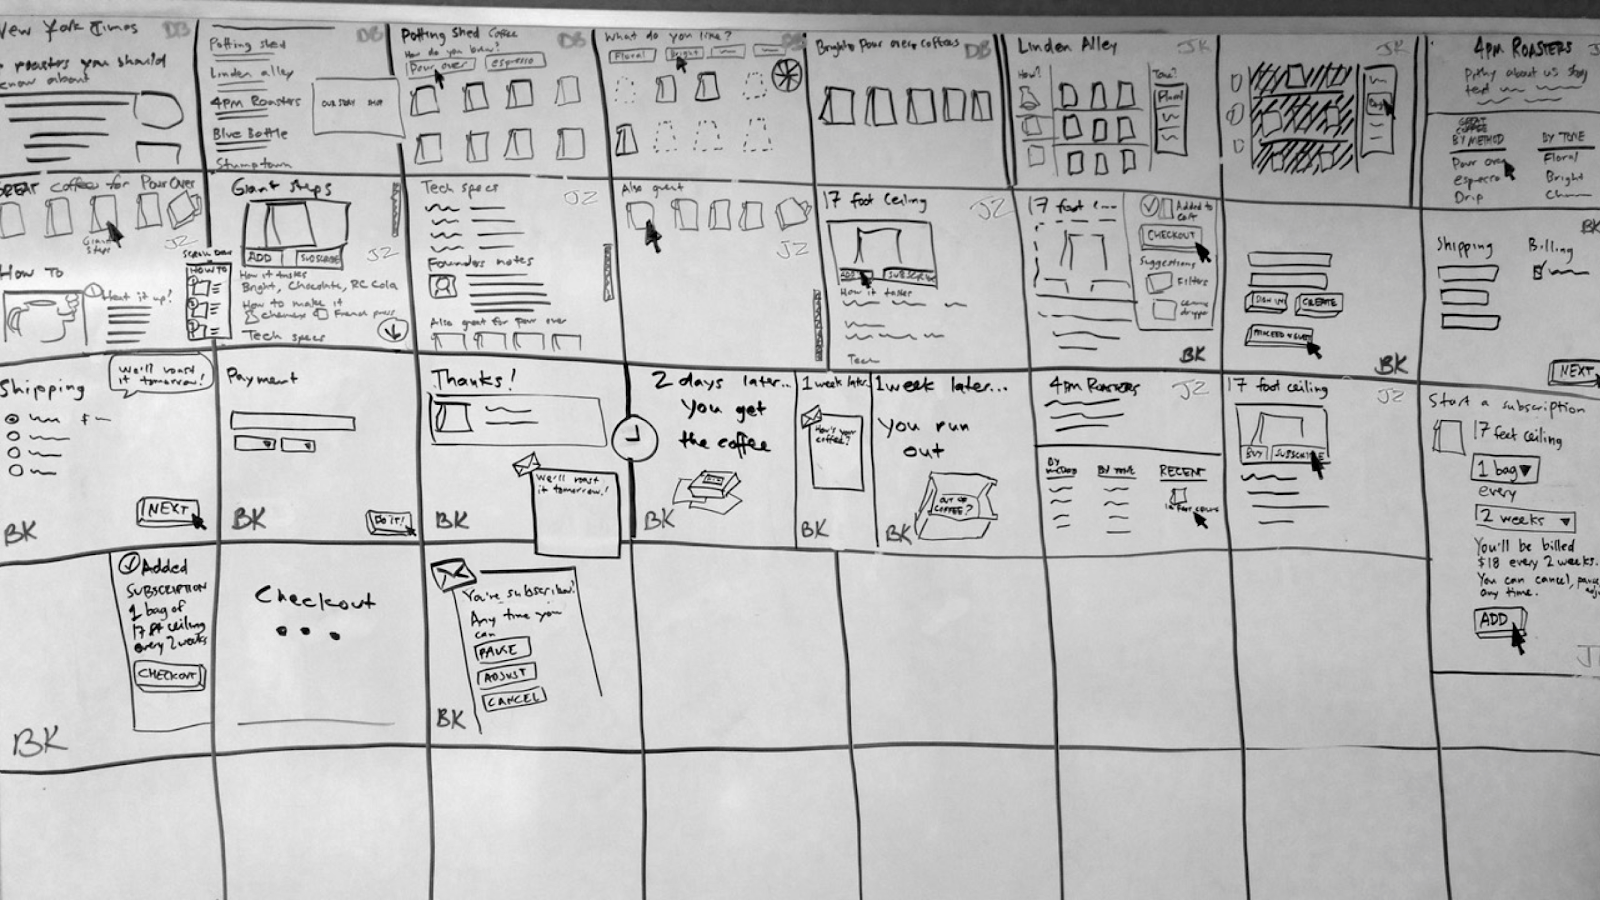 10 Design Sprints and the Process that Launched Million Dollar Products Design Sprint Storyboard Example